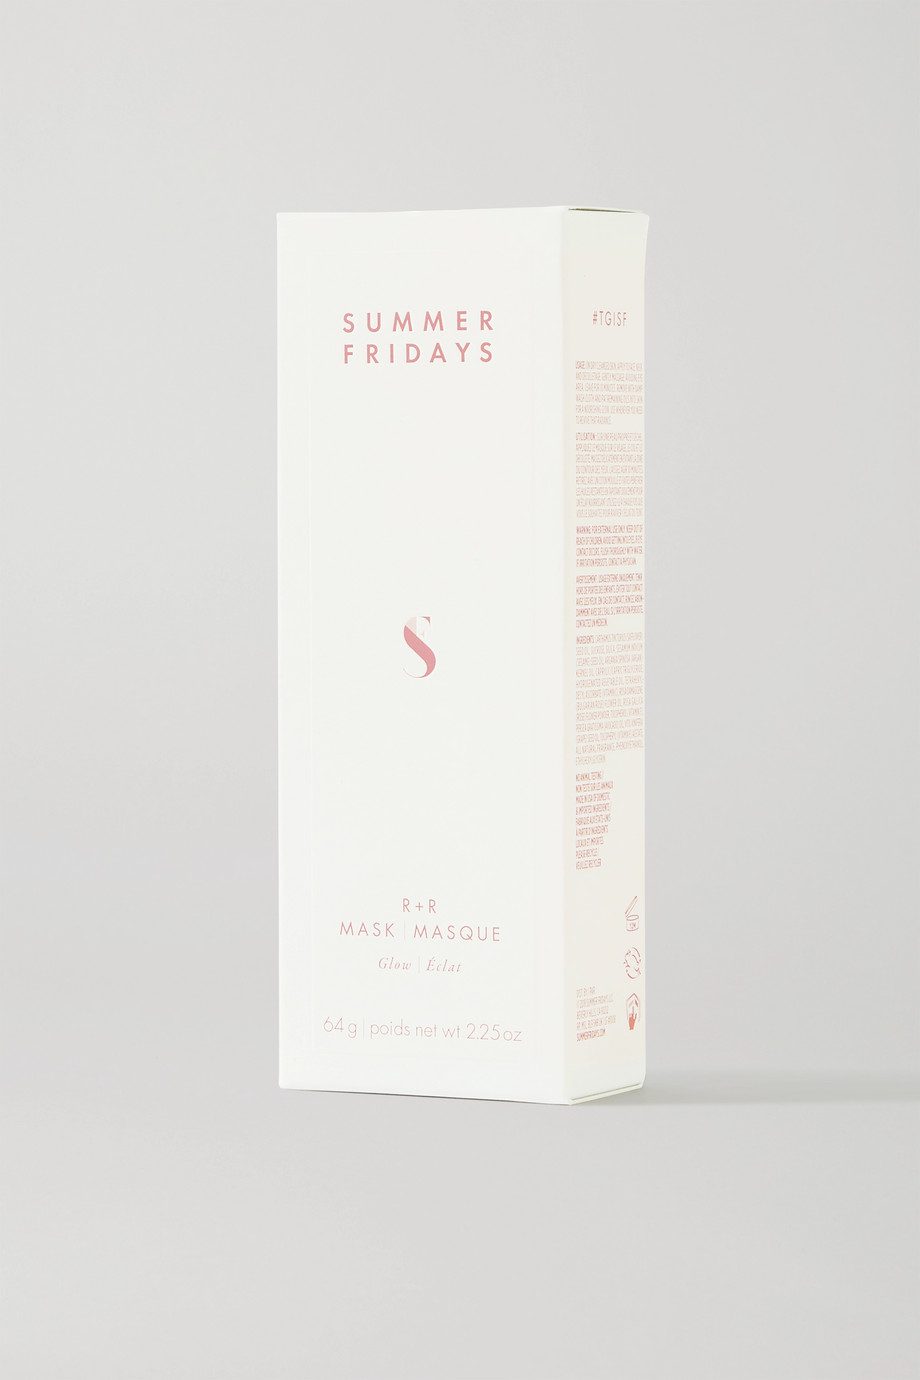 Summer Fridays R + R Mask, 64g